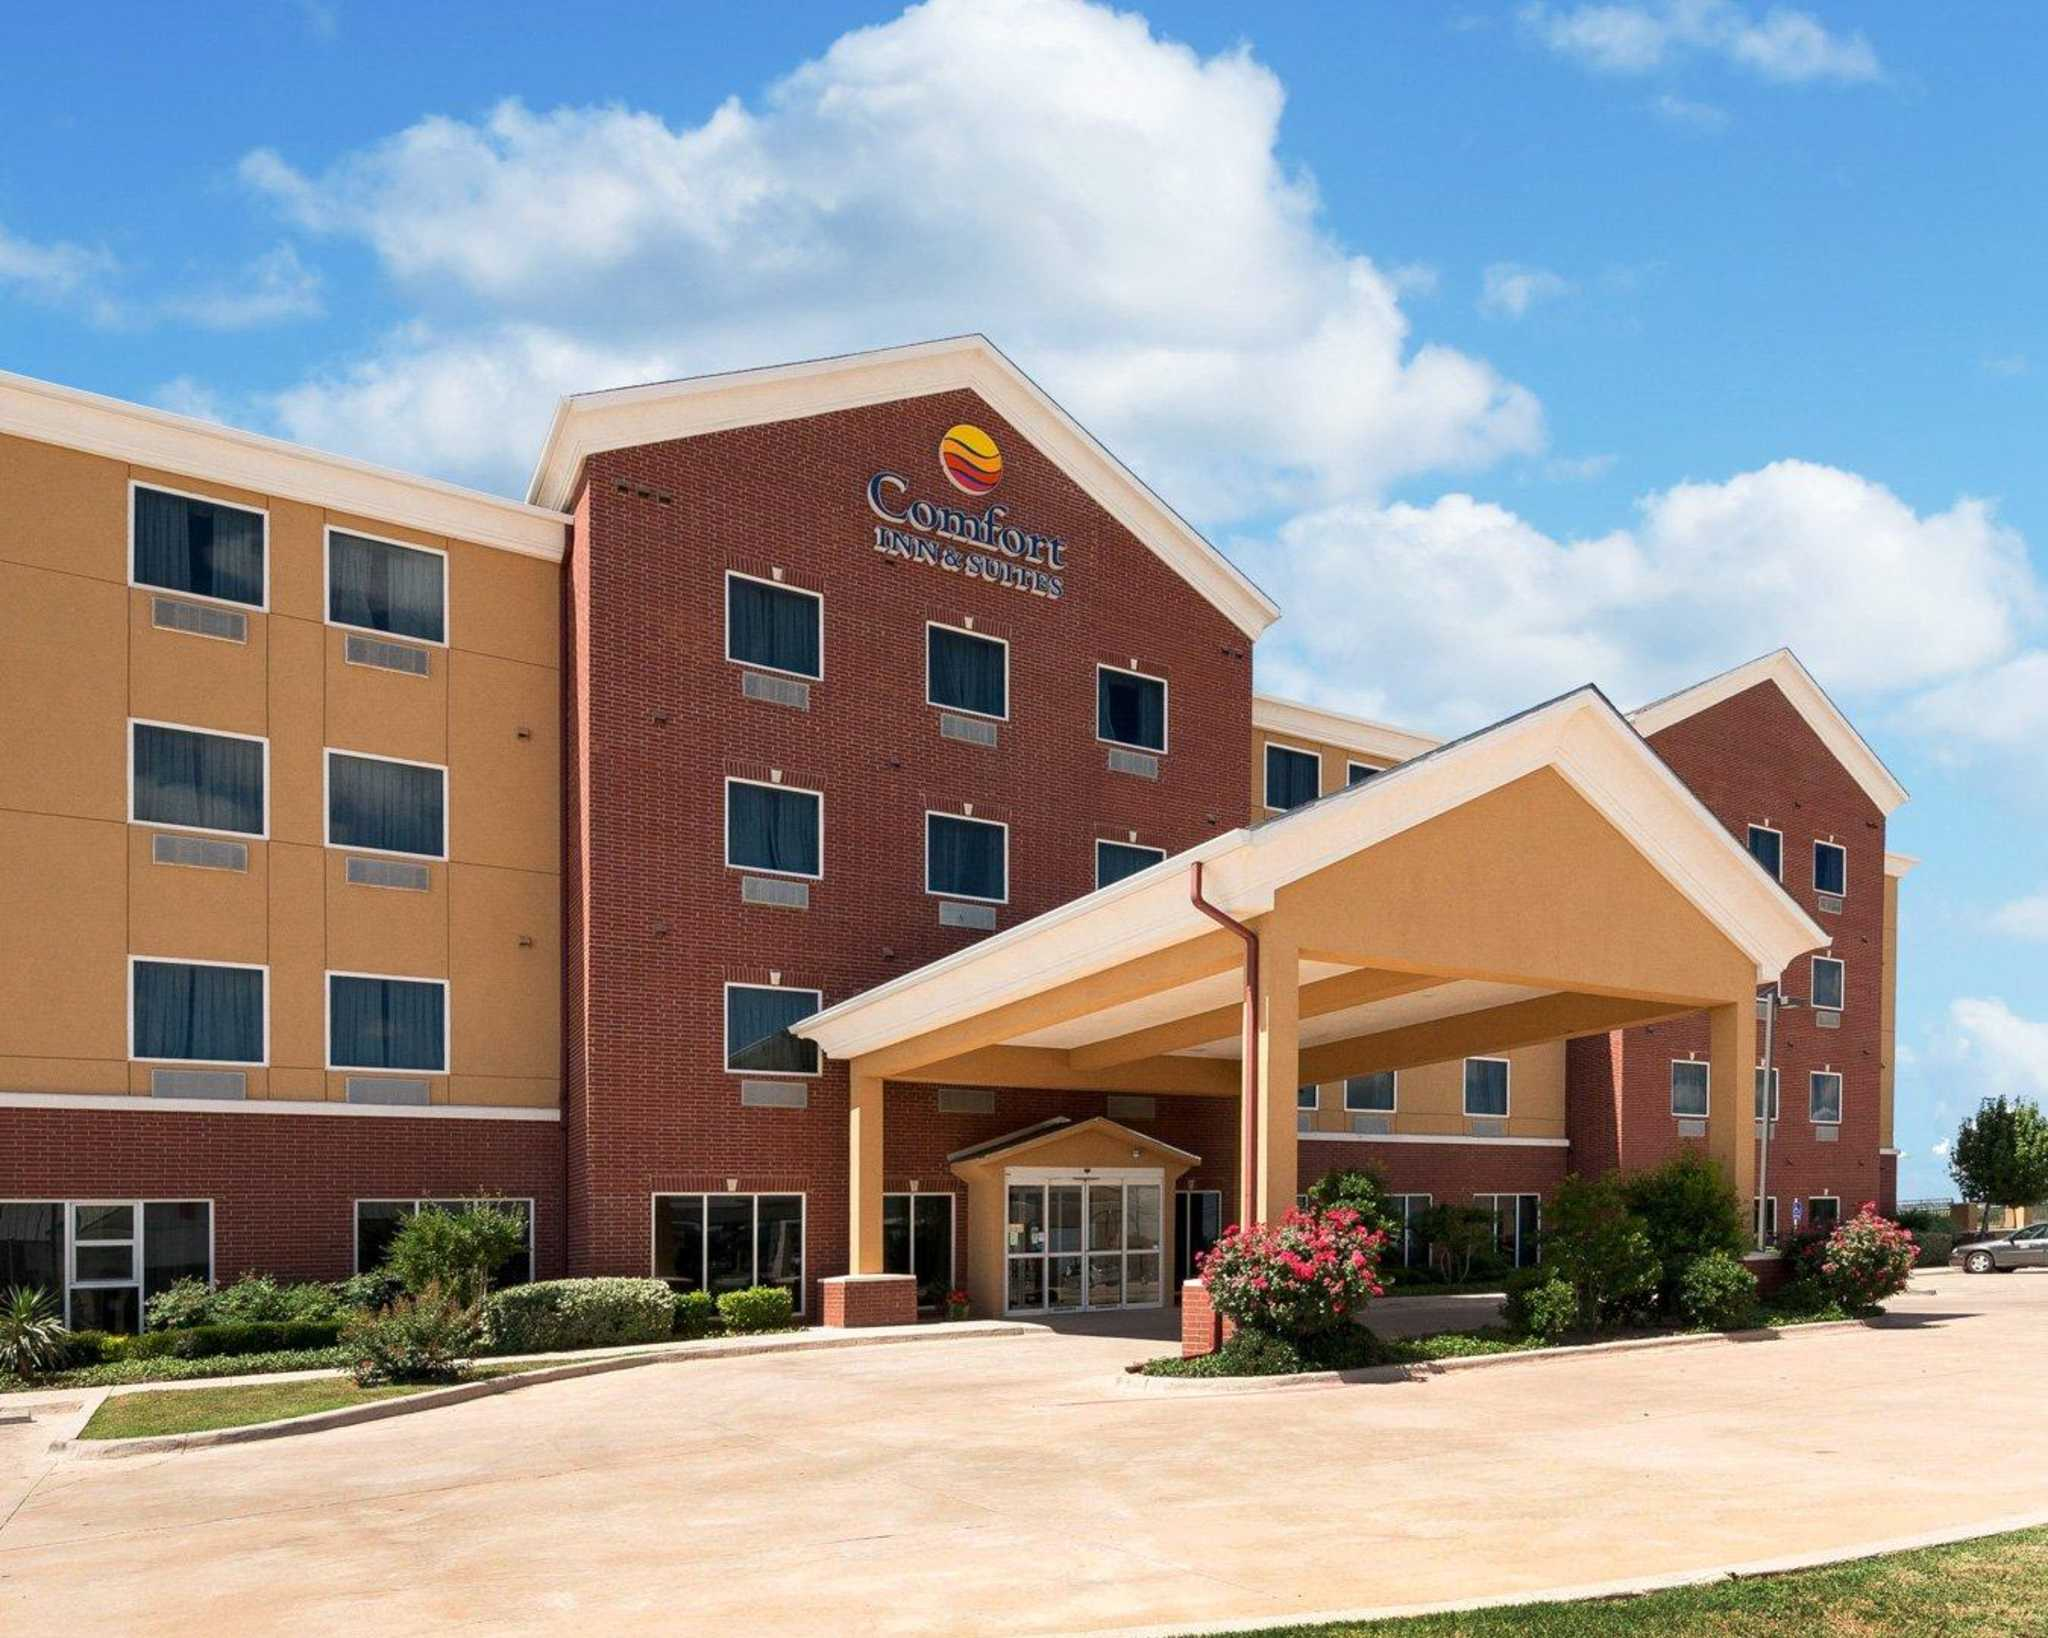 Comfort Inn & Suites Regional Medical Center image 0